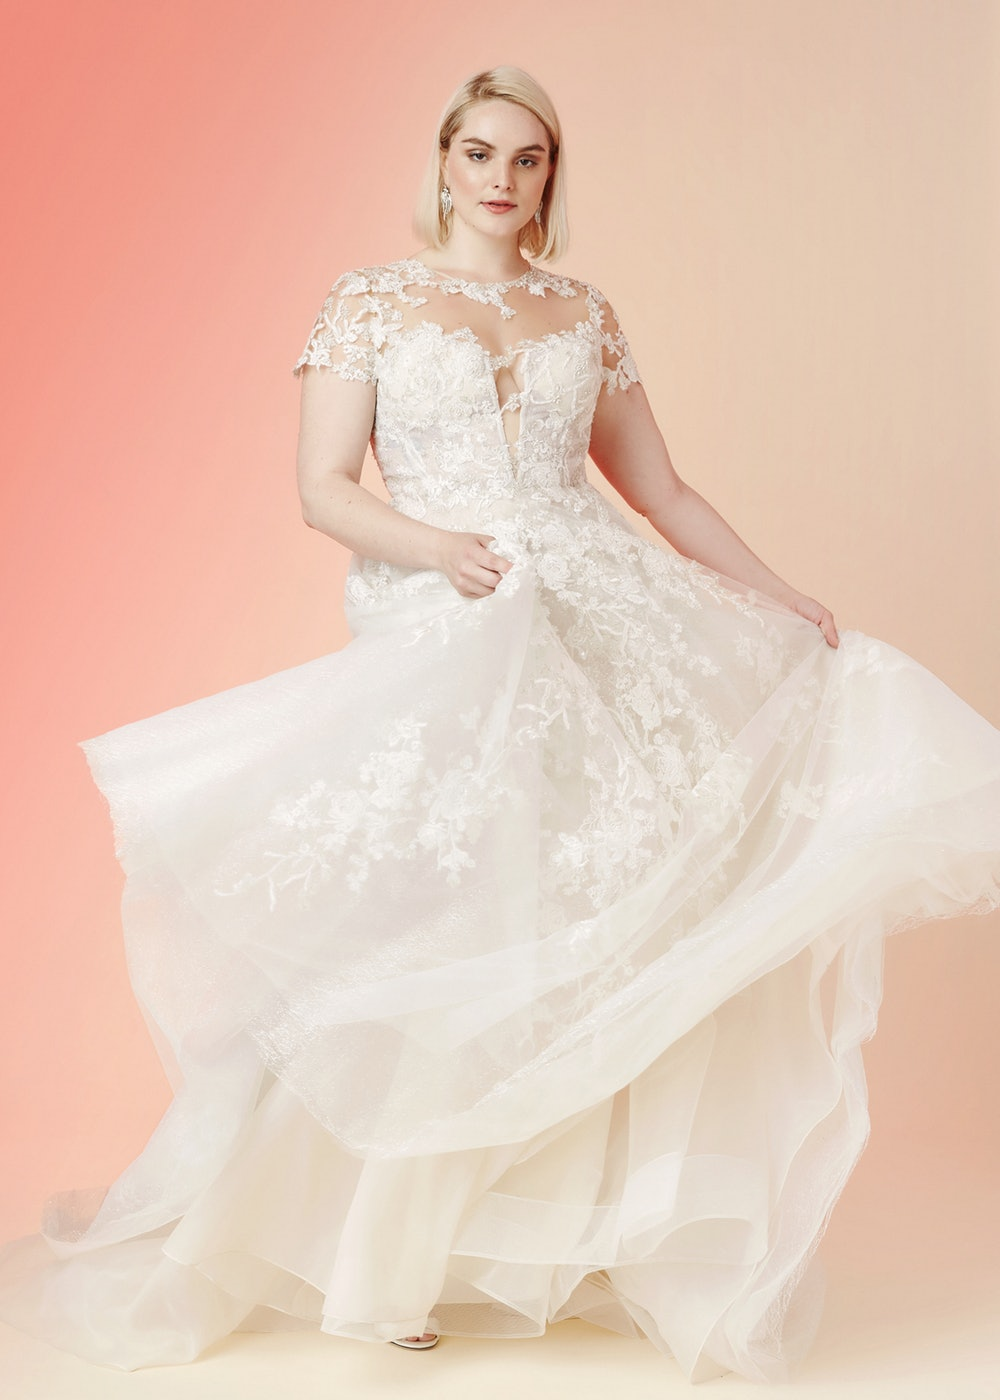 Plus size bride in a cap sleeve lace illusion wedding dress